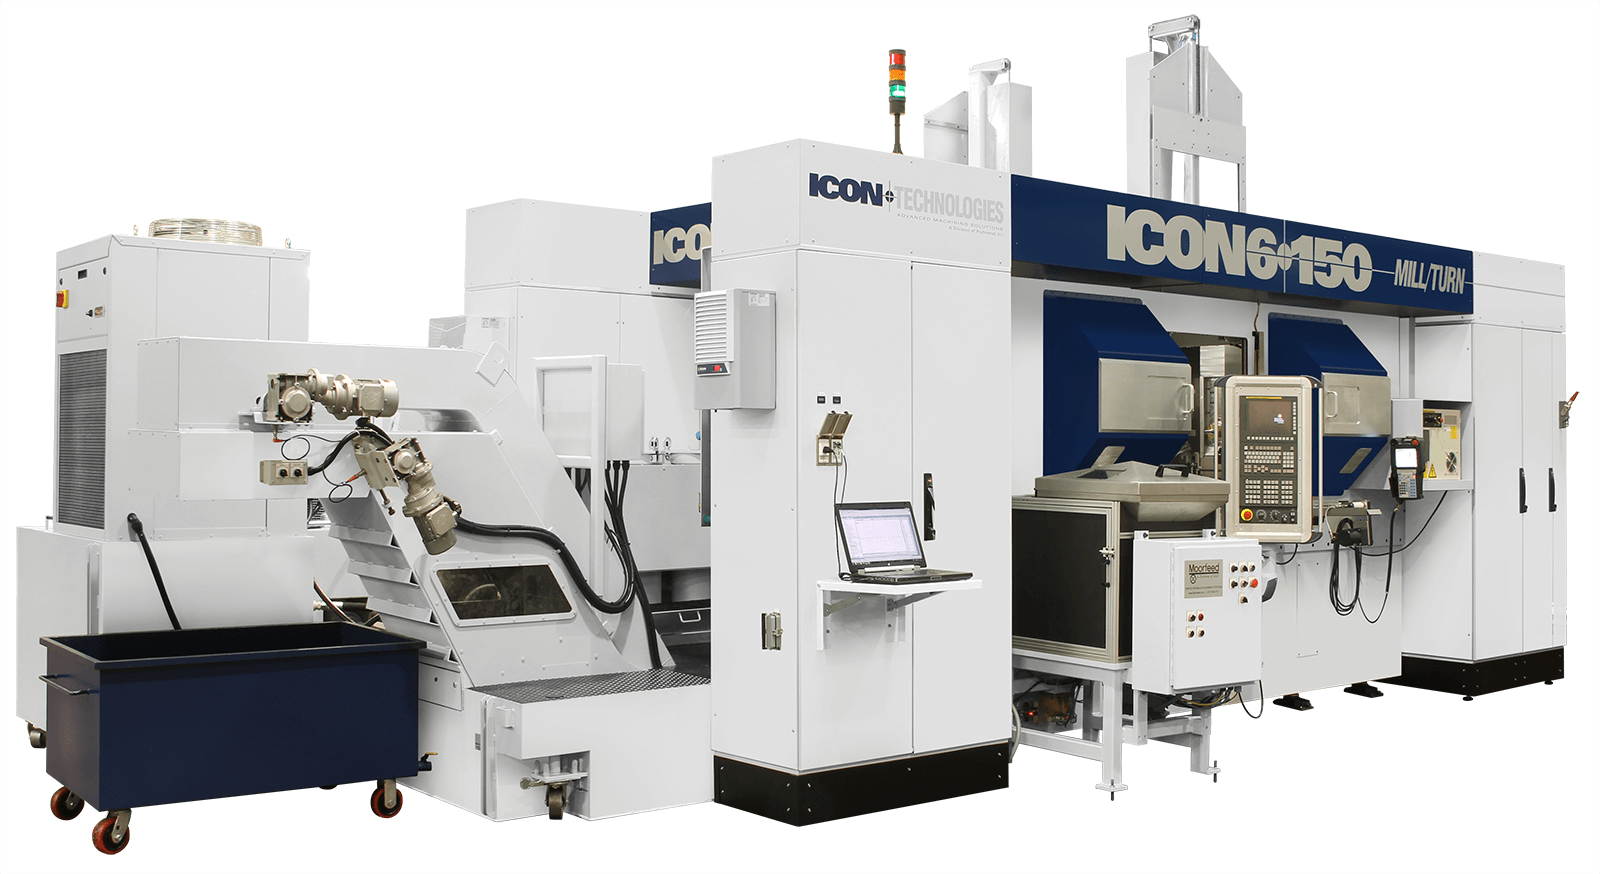 ICON Technolgoies 6-150 Mill/Turn Machine image